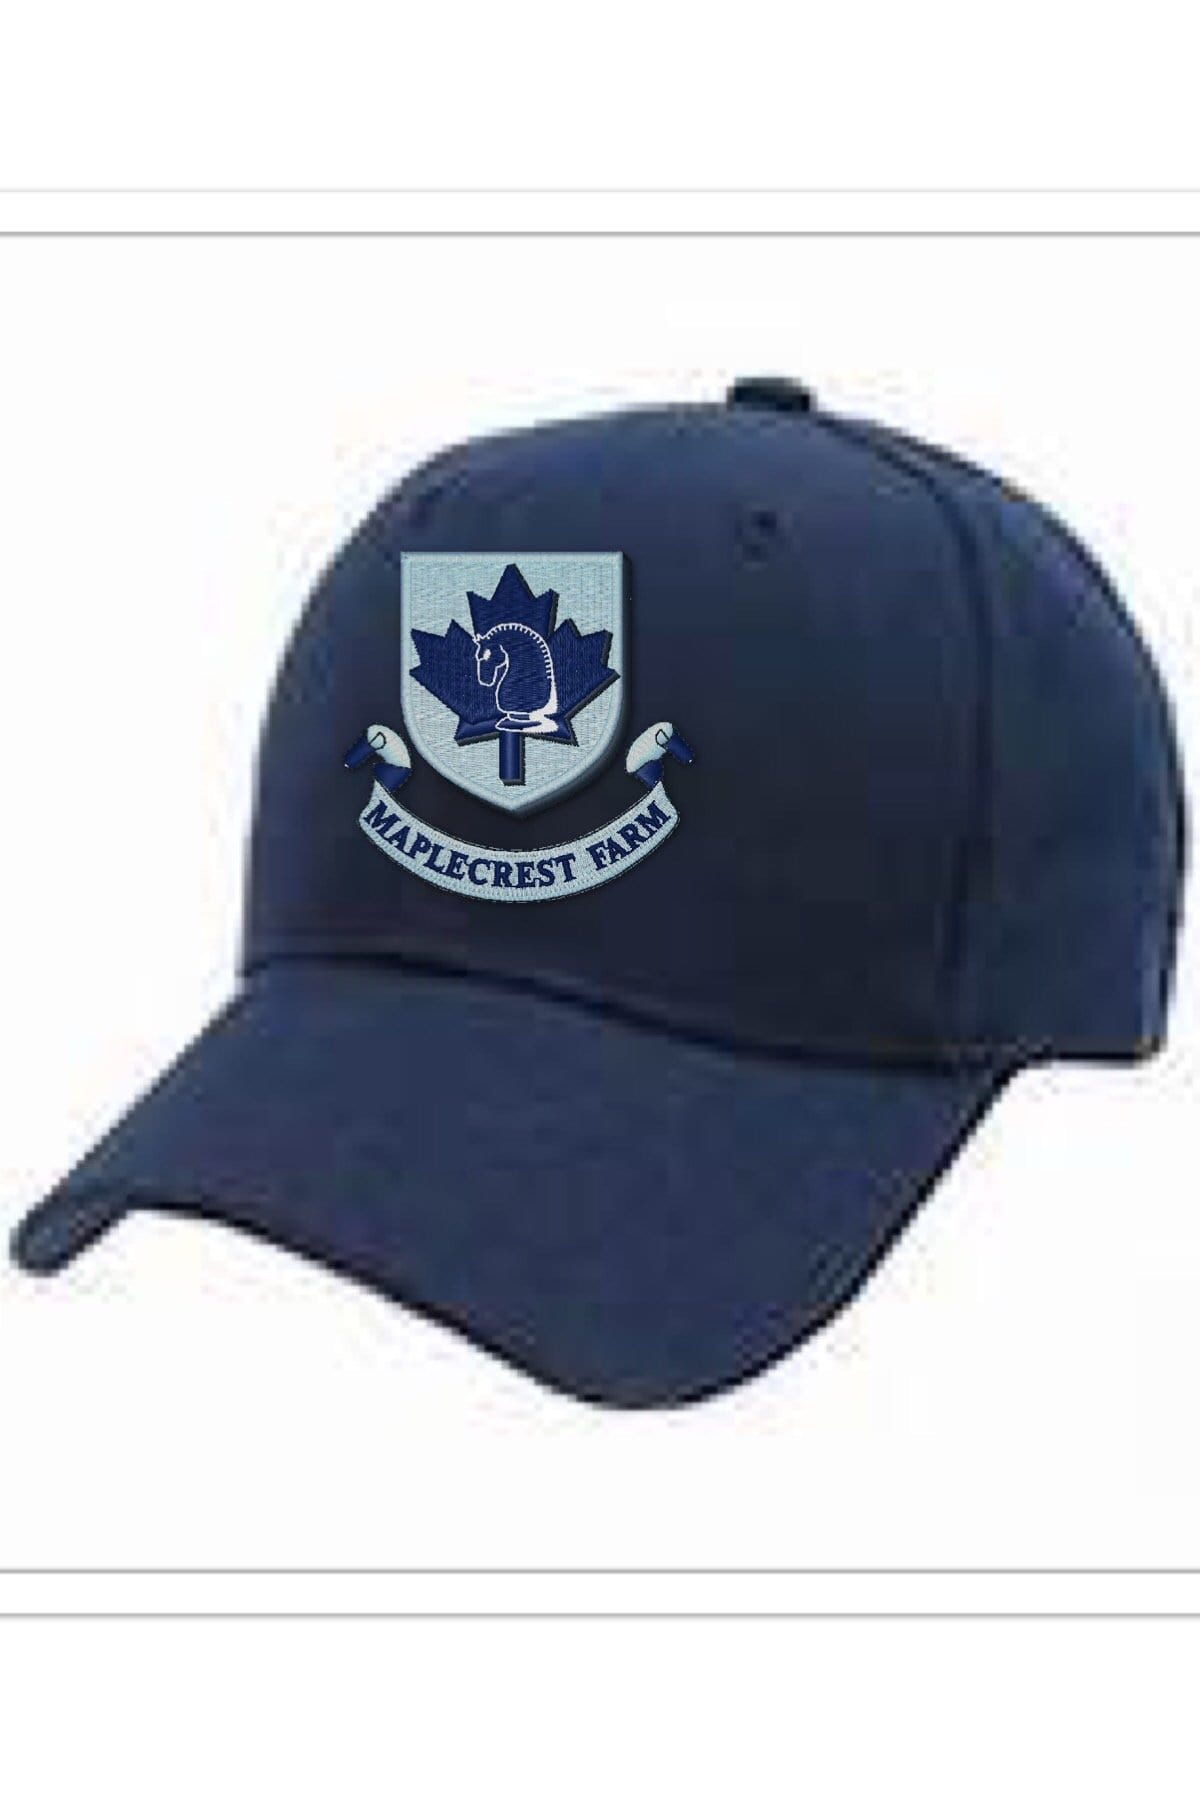 Equestrian Team Apparel Custom Team Hats Maplecrest Farm baseball cap equestrian team apparel online tack store mobile tack store custom farm apparel custom show stable clothing equestrian lifestyle horse show clothing riding clothes horses equestrian tack store